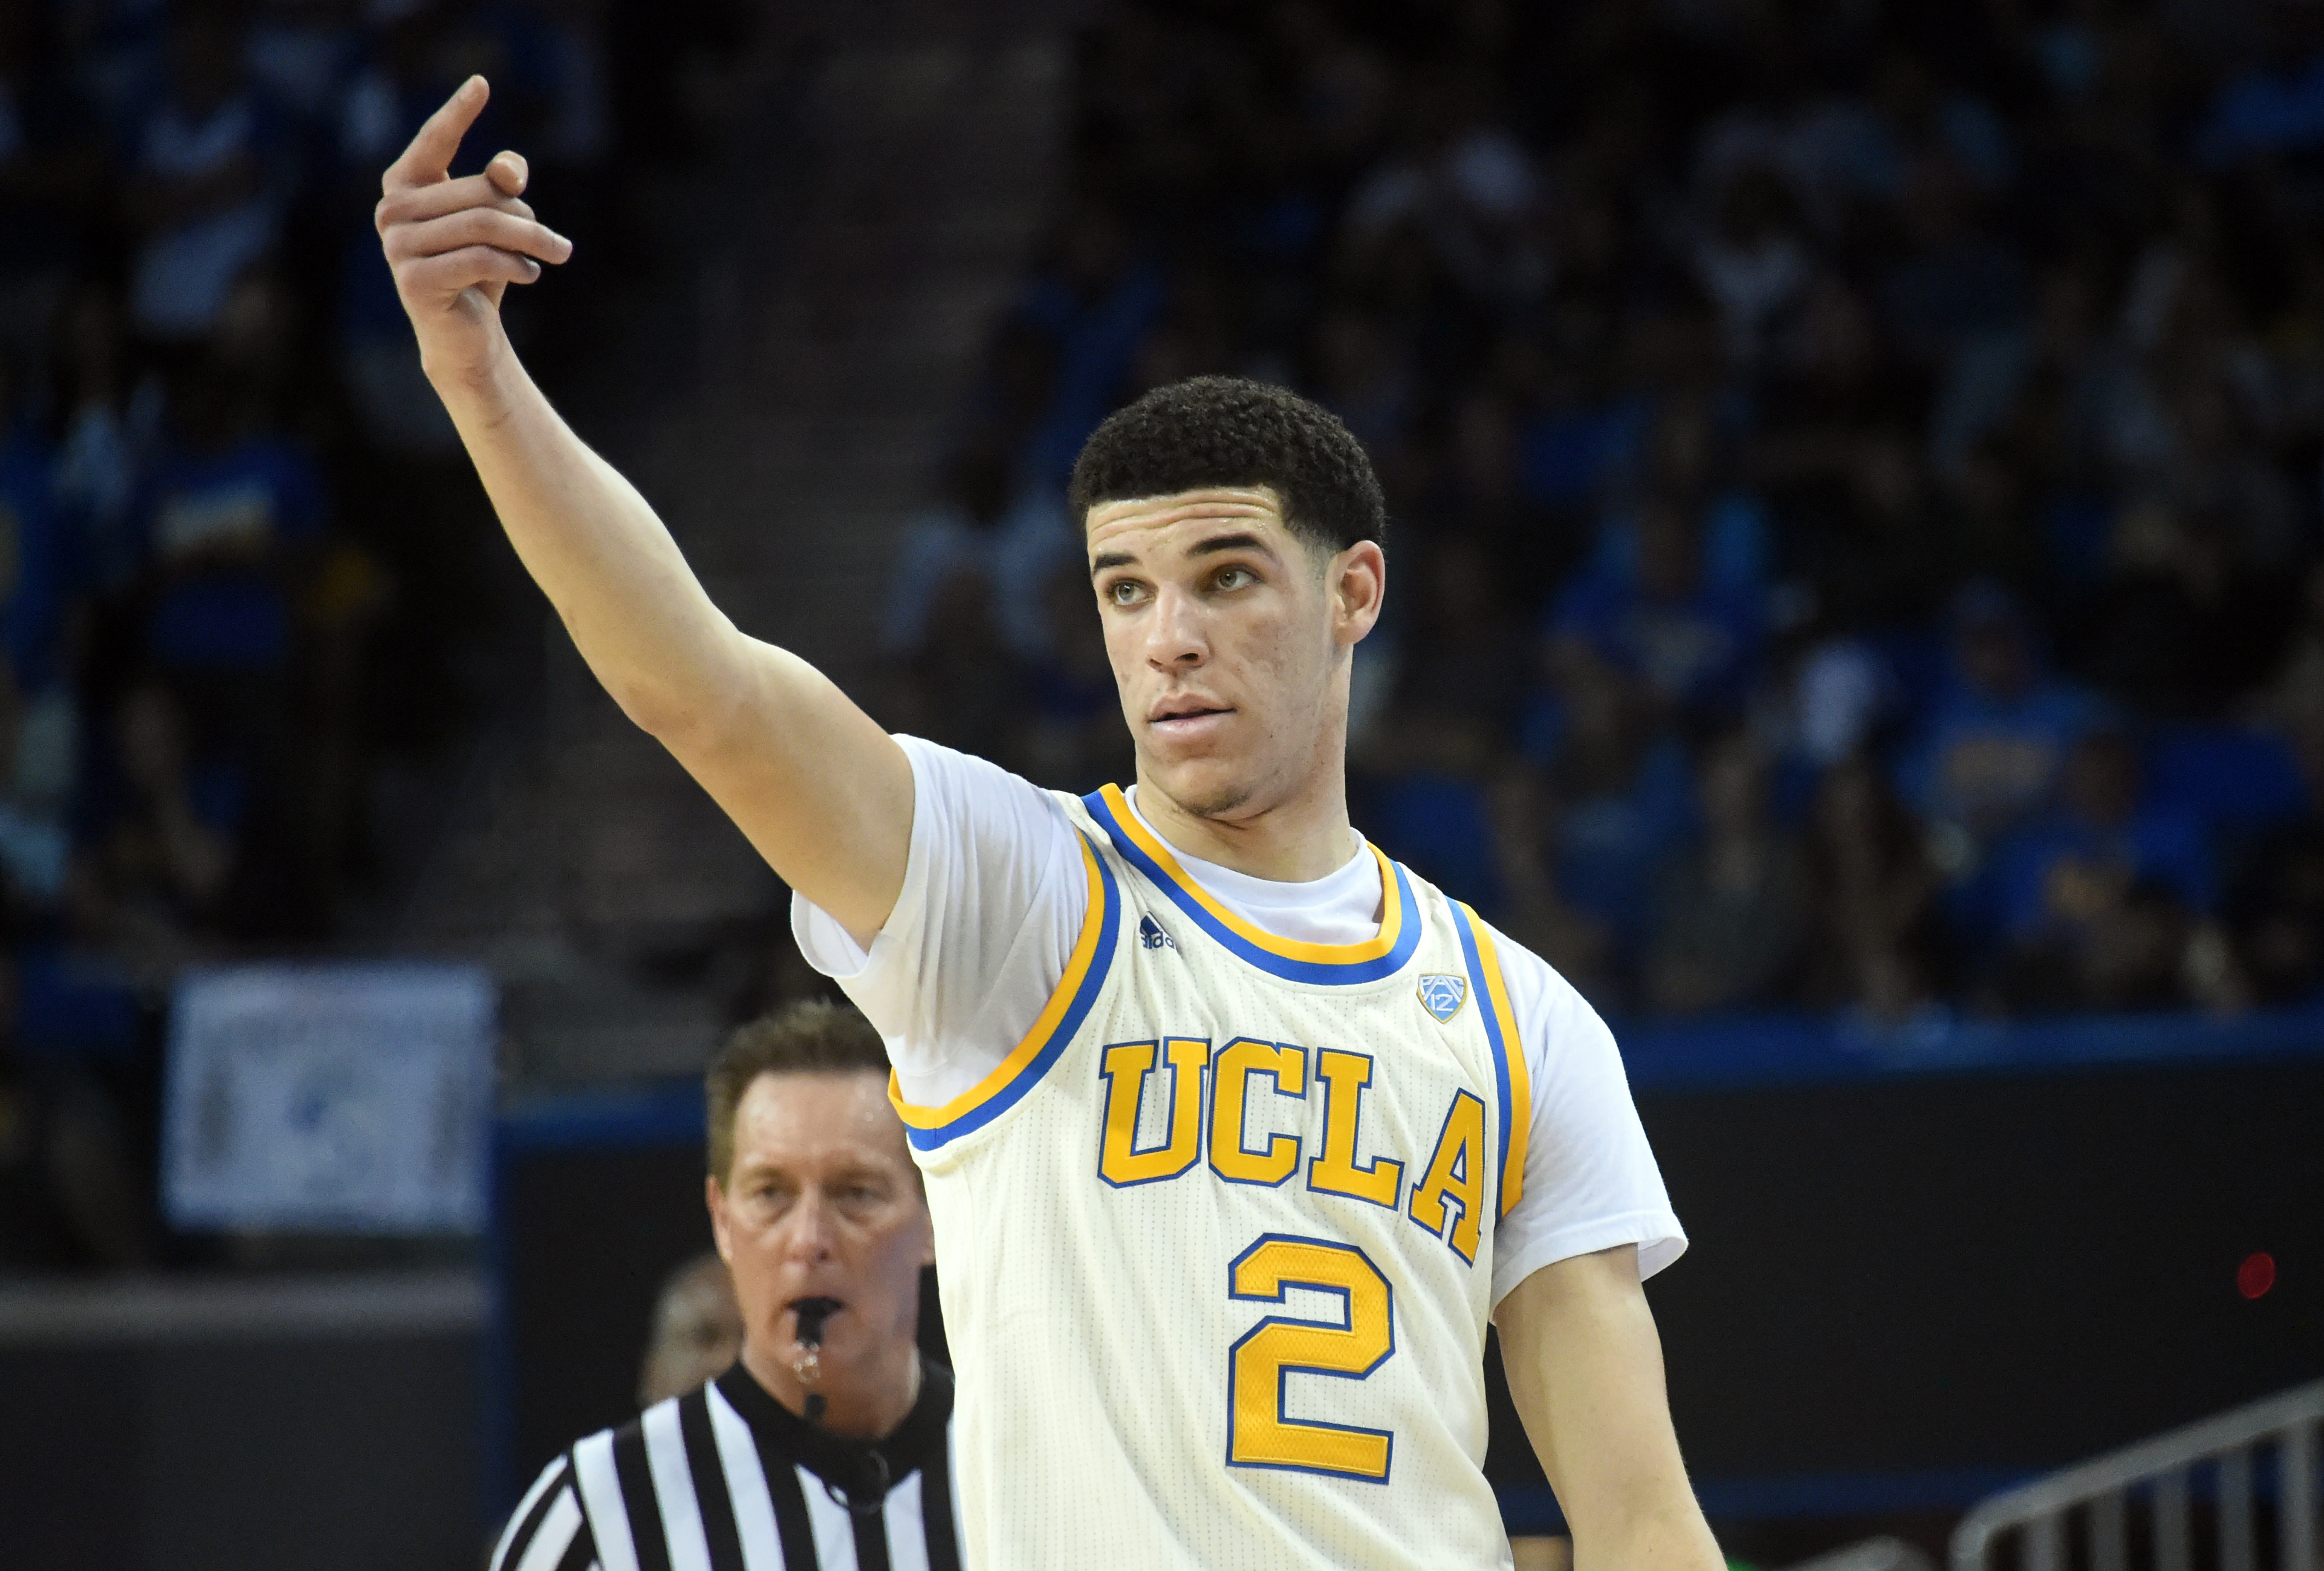 Kentucky Basketball The Regular Season As Told By Drake: UCLA Eliminated From March Madness: Did Lonzo Ball Declare